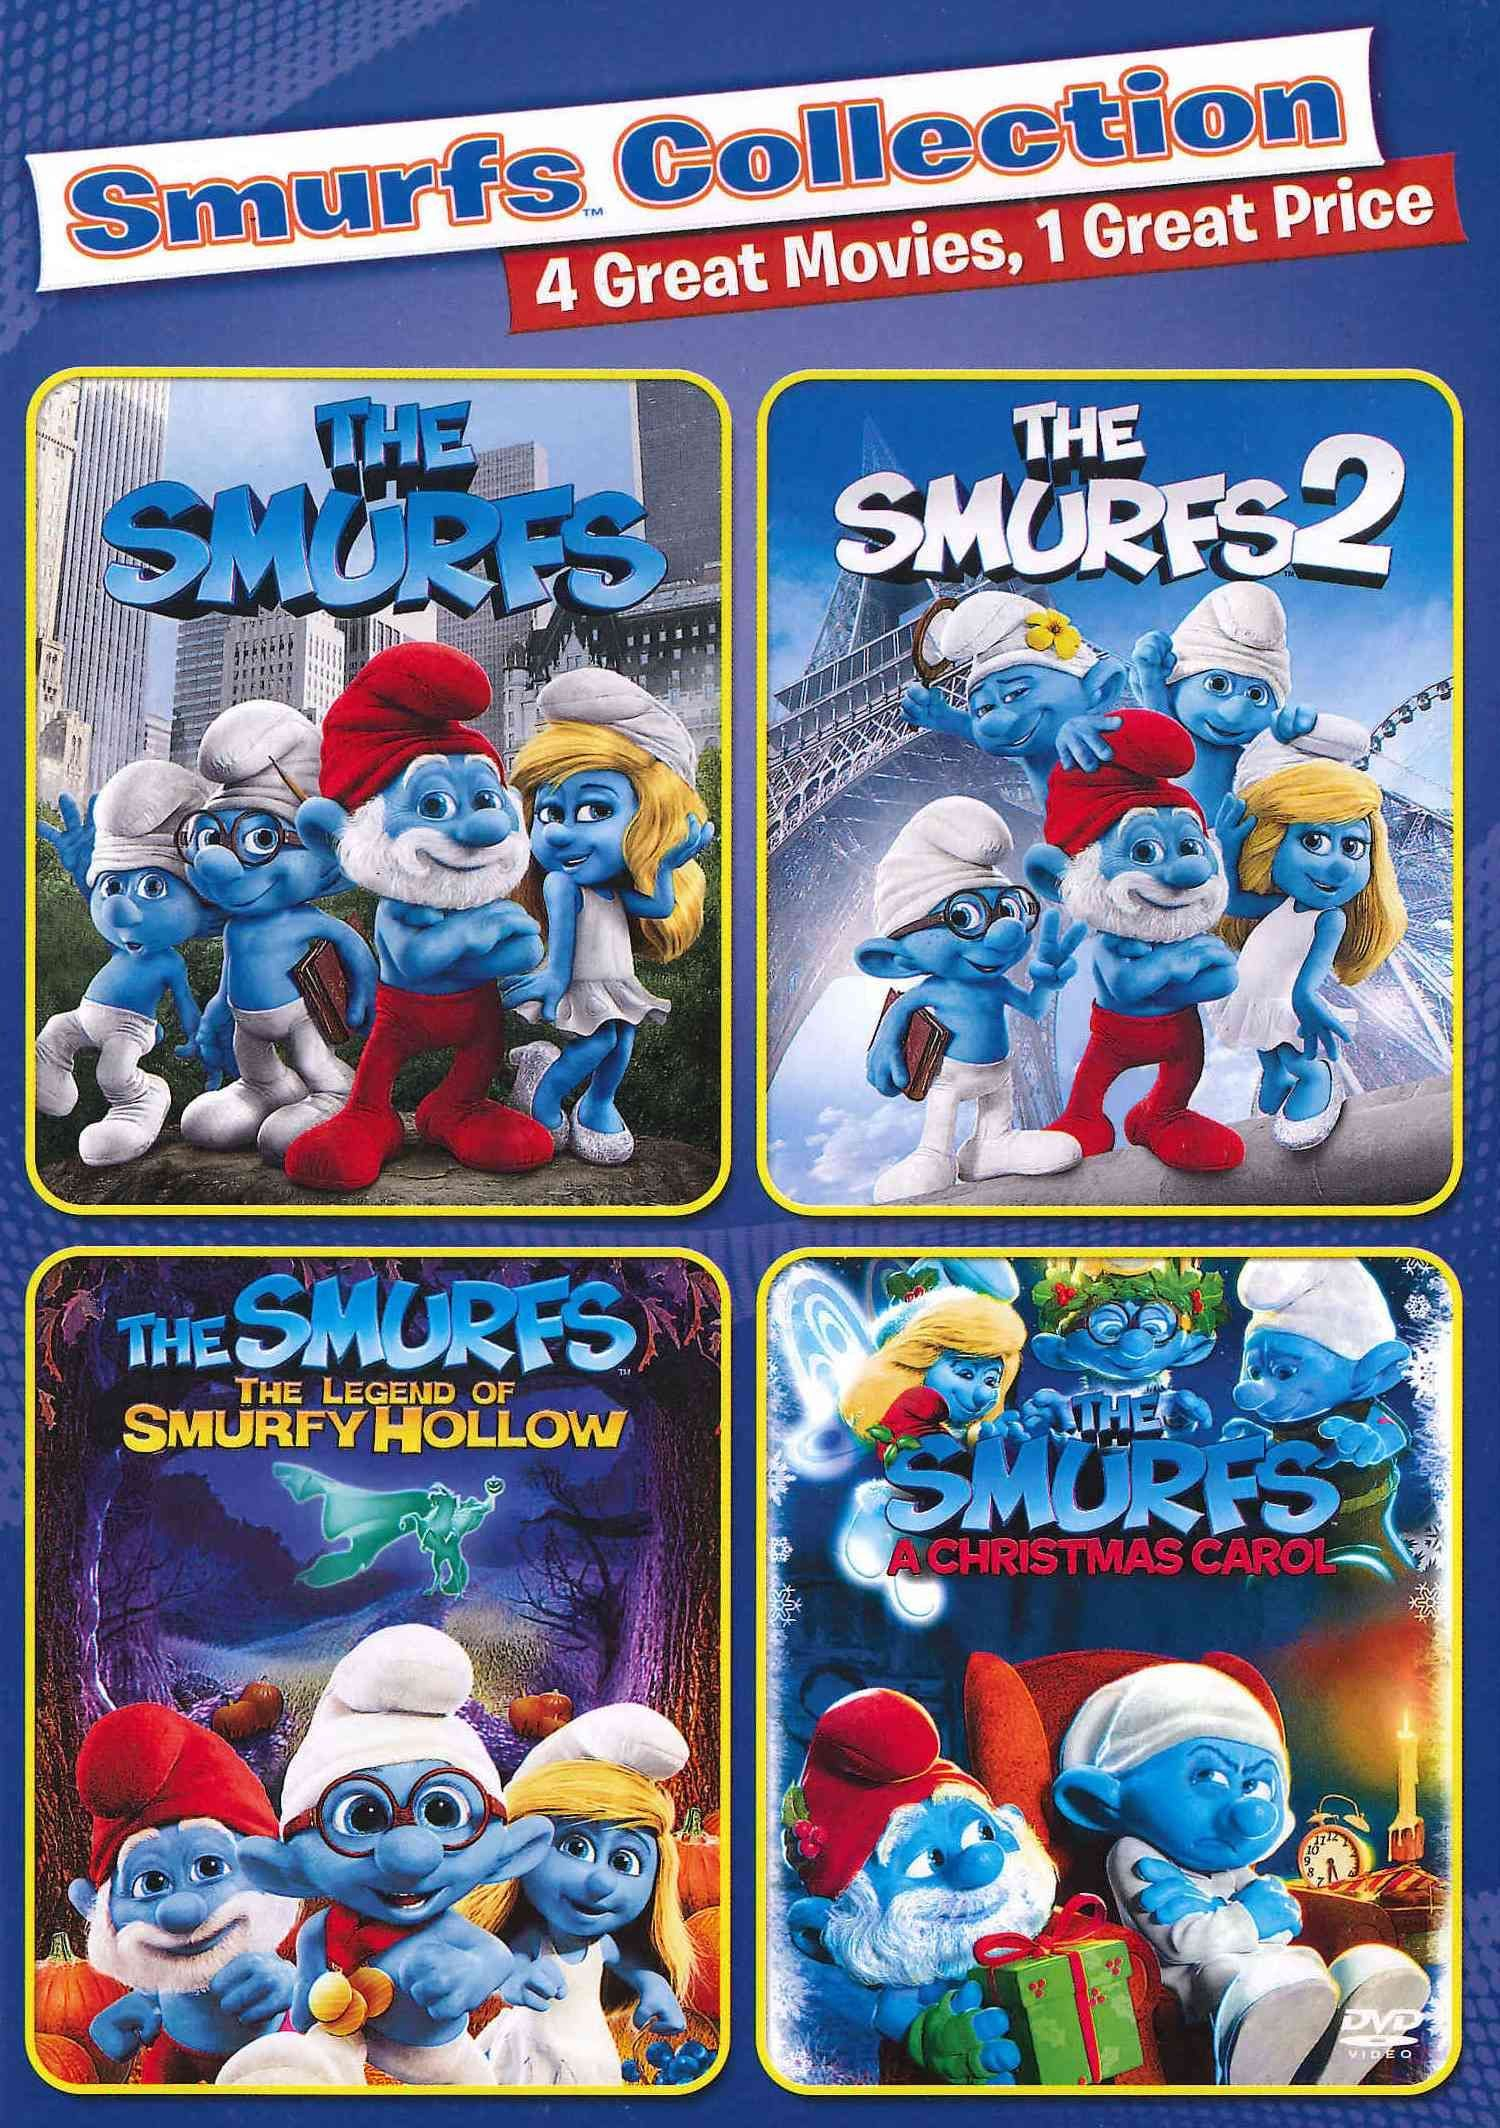 the smurfs the legend of smurfy hollow online